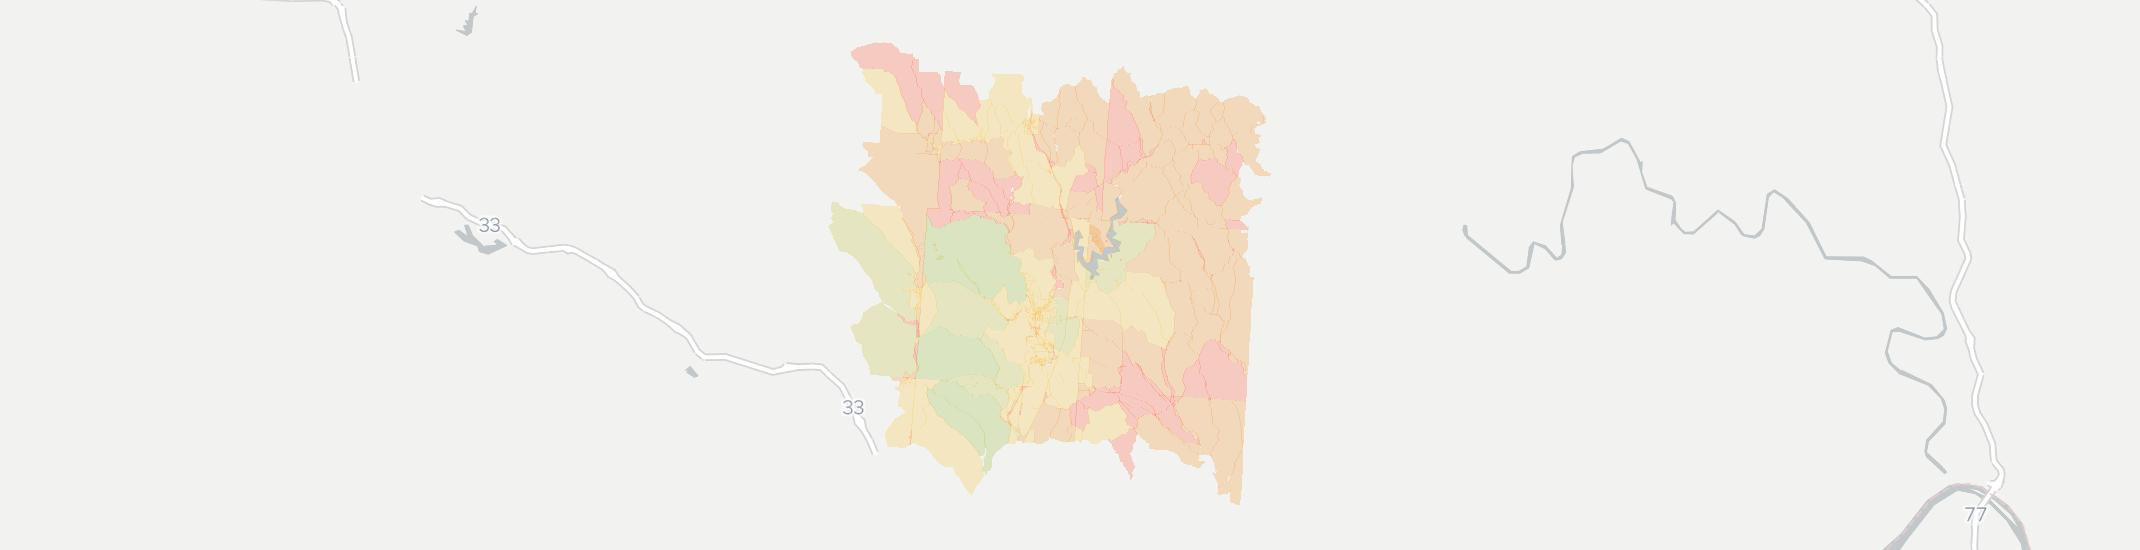 Glouster Internet Competition Map. Click for interactive map.